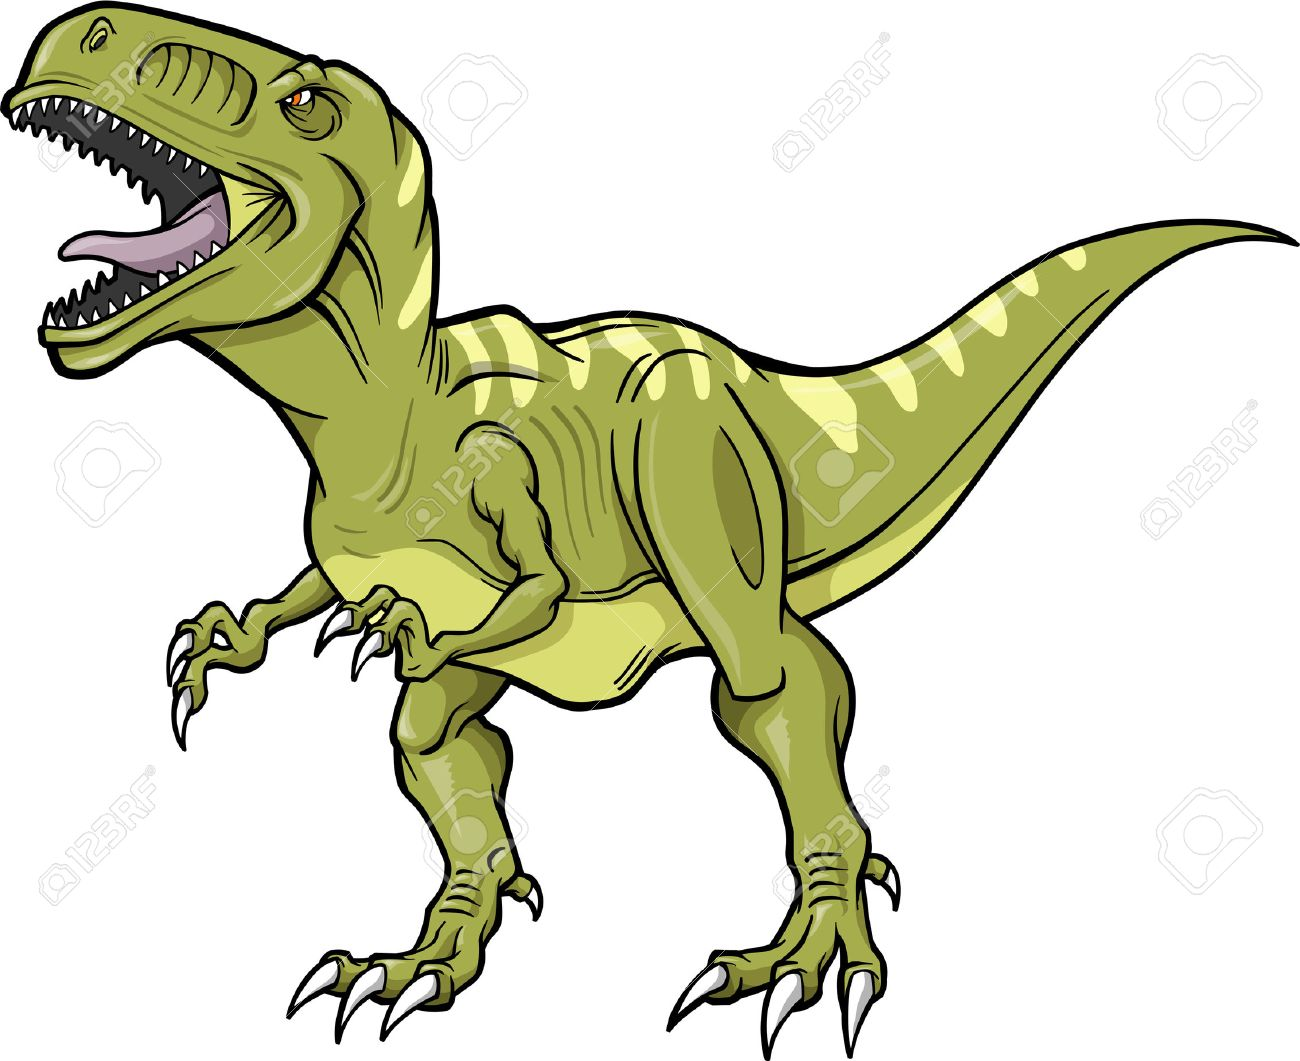 t rex dinosaur vector illustration royalty free cliparts vectors rh 123rf com t rex clipart t rex clipart images